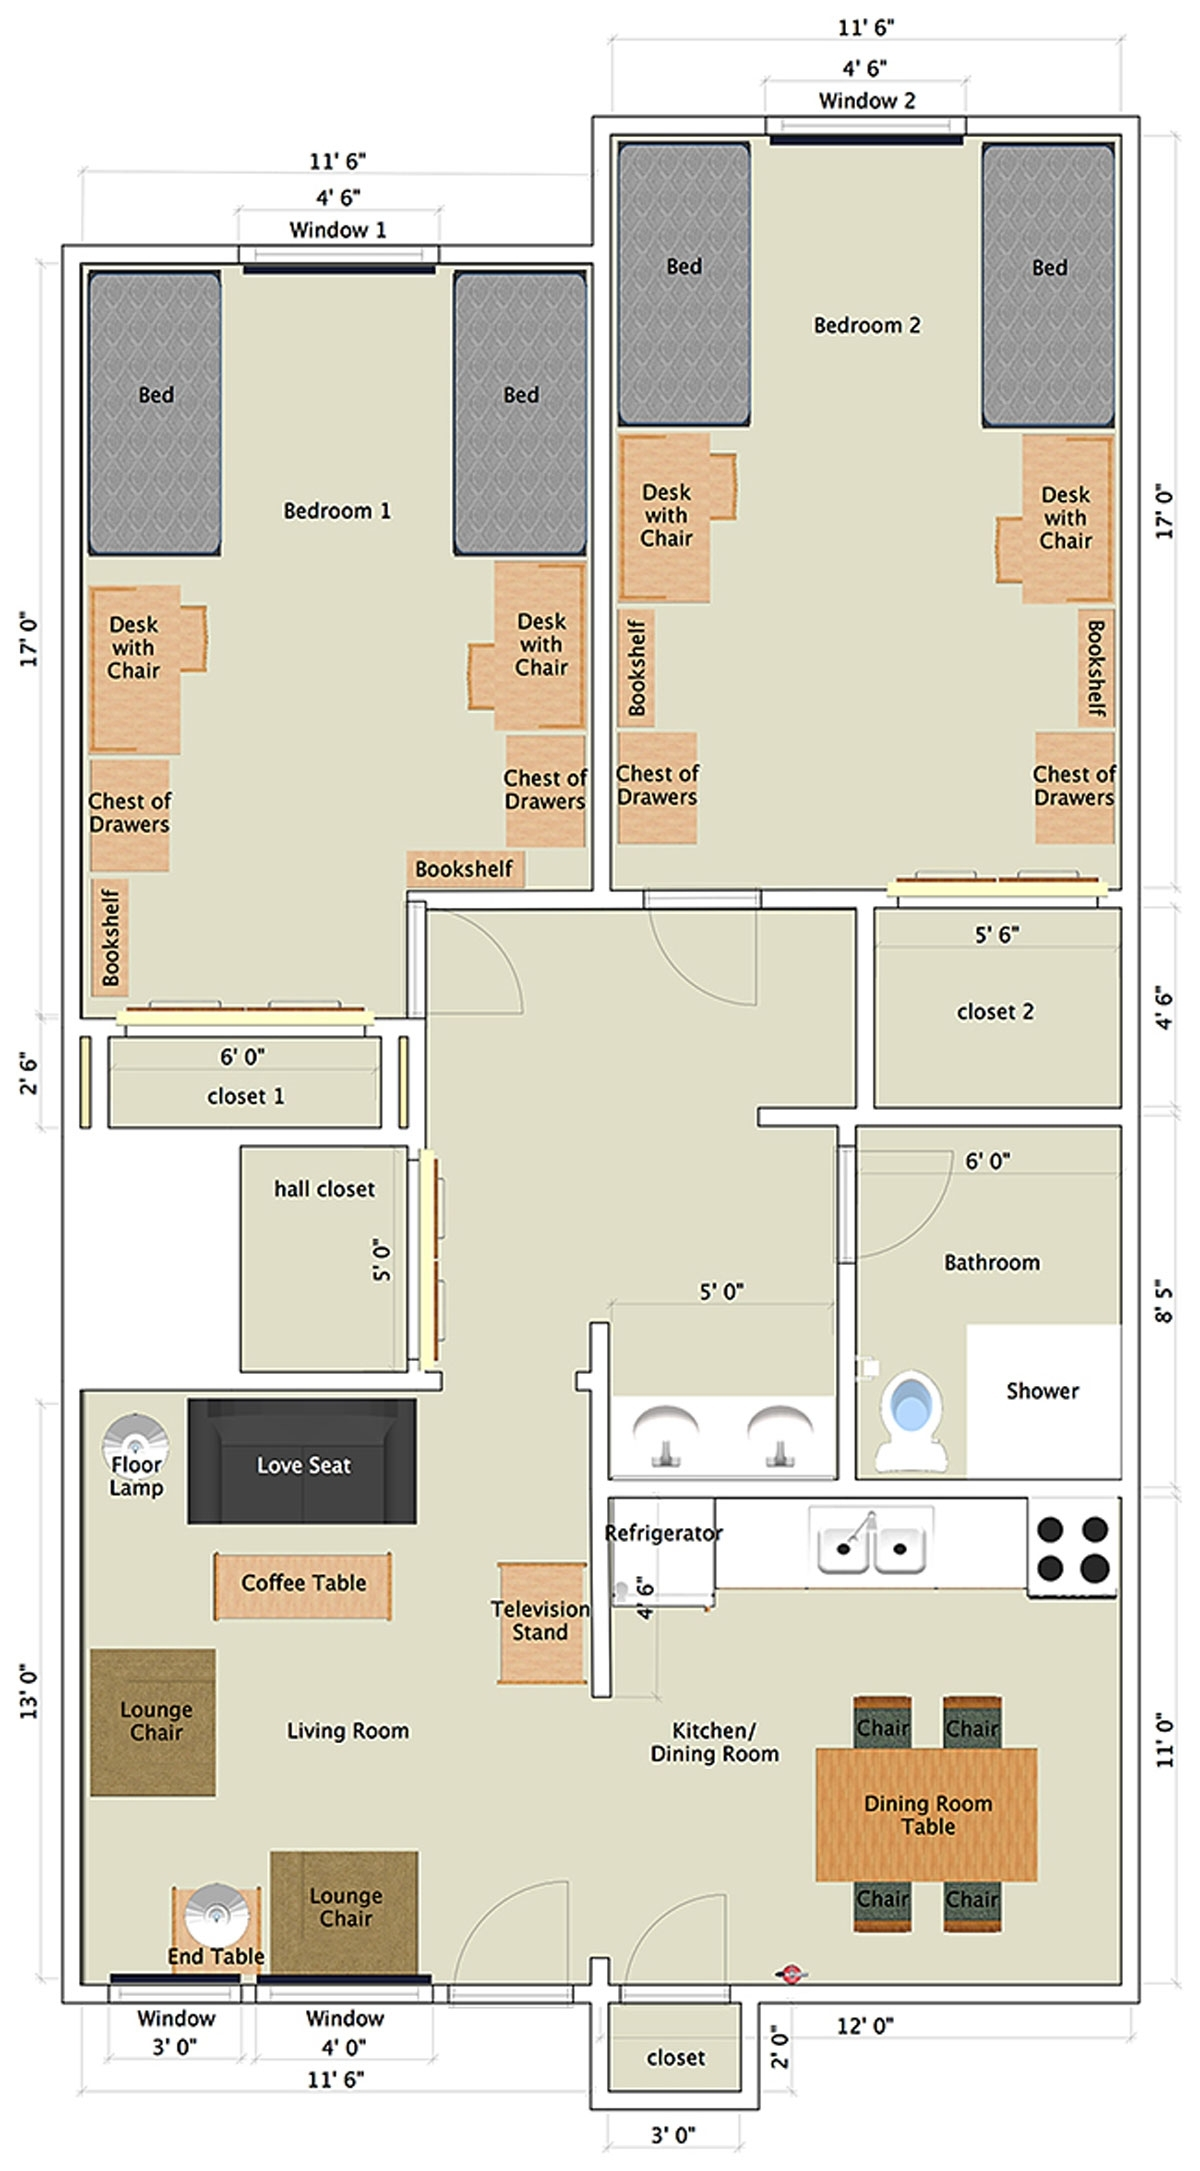 Nittany Apartments: 2-Bedroom Garden Apartment | Penn State with regard to Garden Apartment Floor Plans